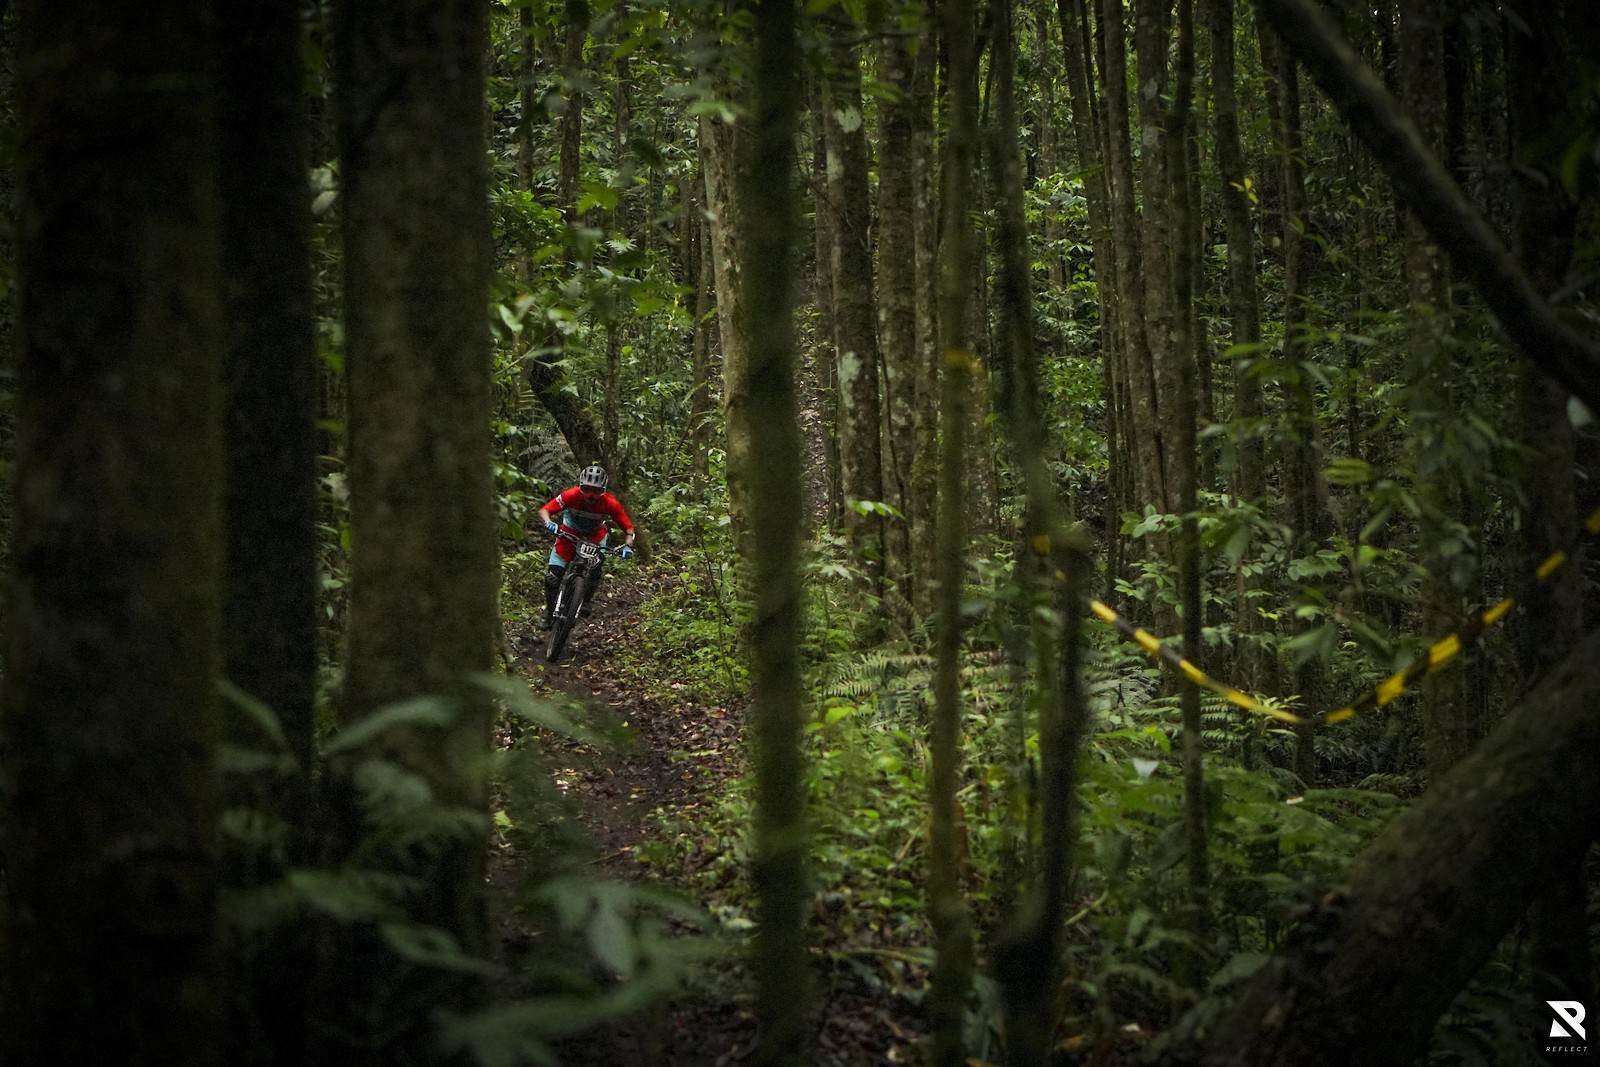 Through the Jungle - Ditra Pranata - RezaAkhmad - Mountain Biking Pictures - Vital MTB